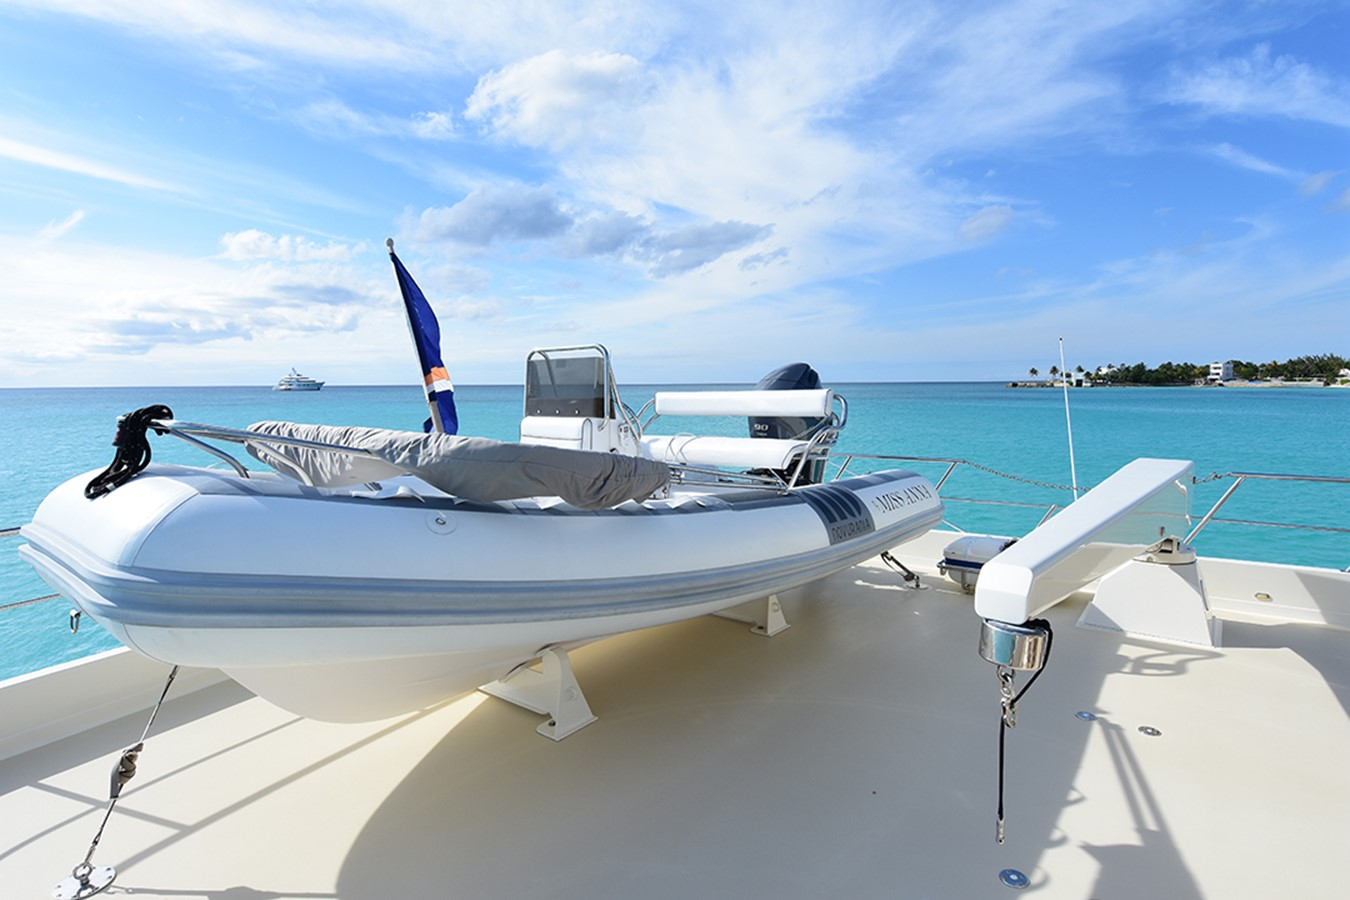 Tender on Boat Deck 2007 OFFSHORE YACHTS Voyager Motor Yacht 2535019